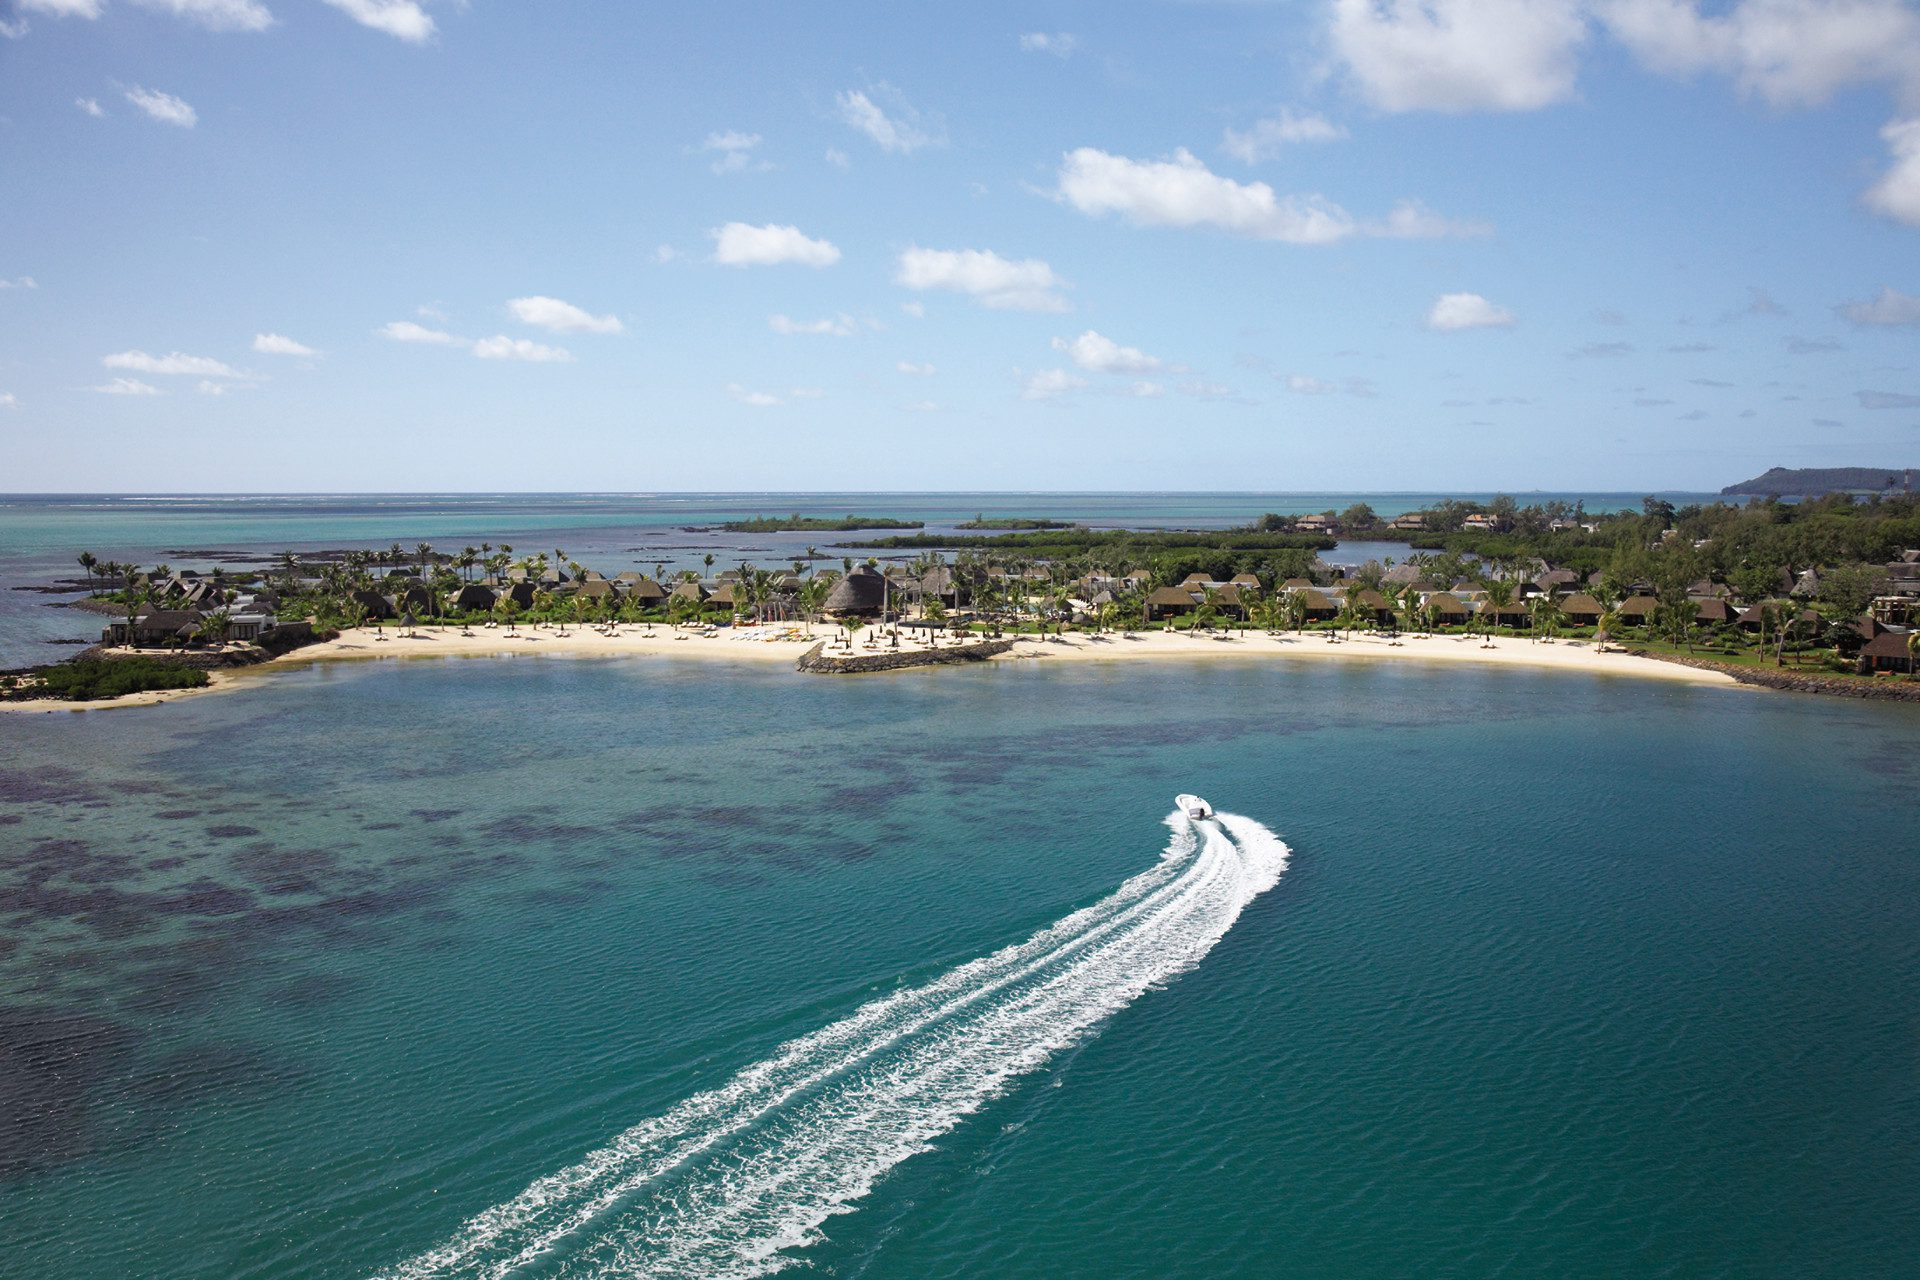 boat with wake entering bay with sandy beach on safari in Mauritius